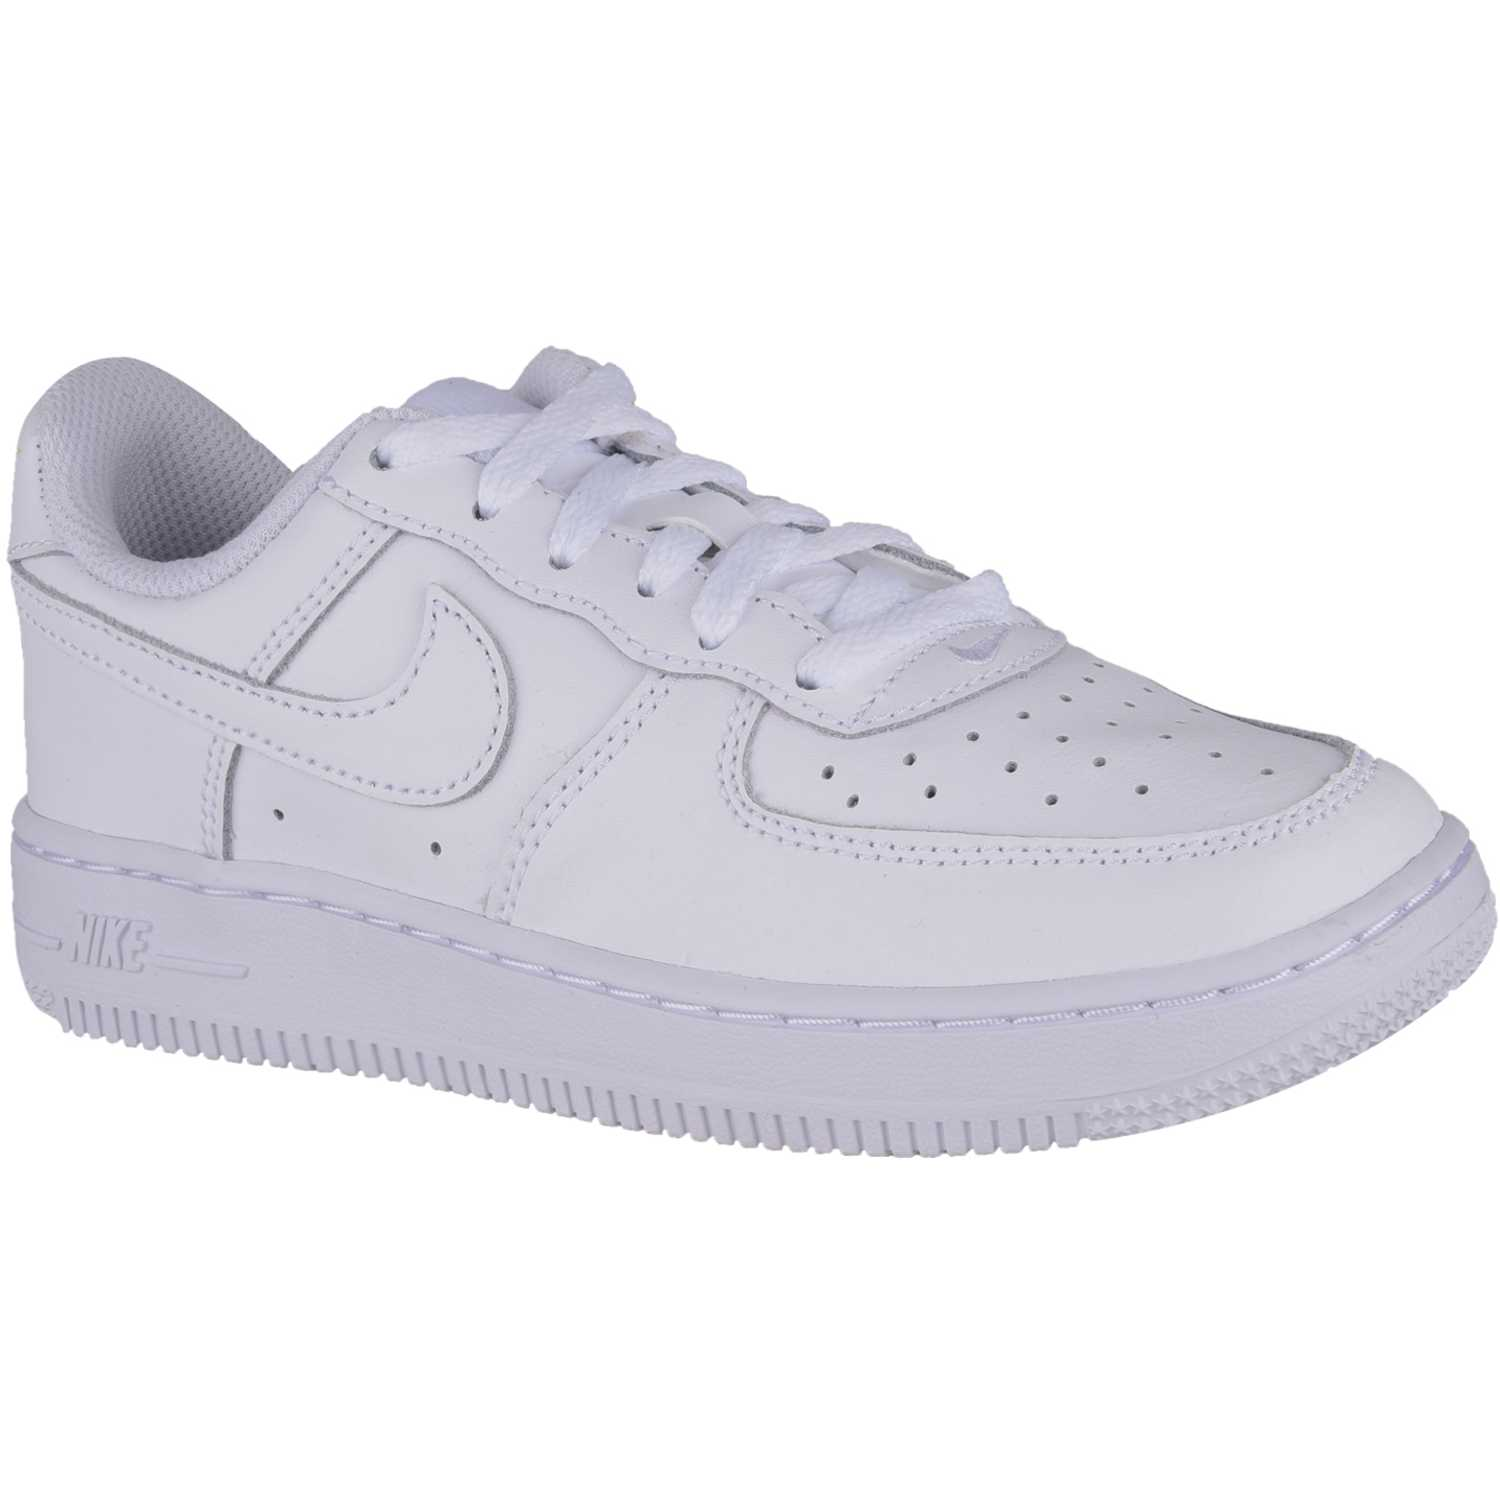 Casual de Niño Nike Blanco force 1 bp